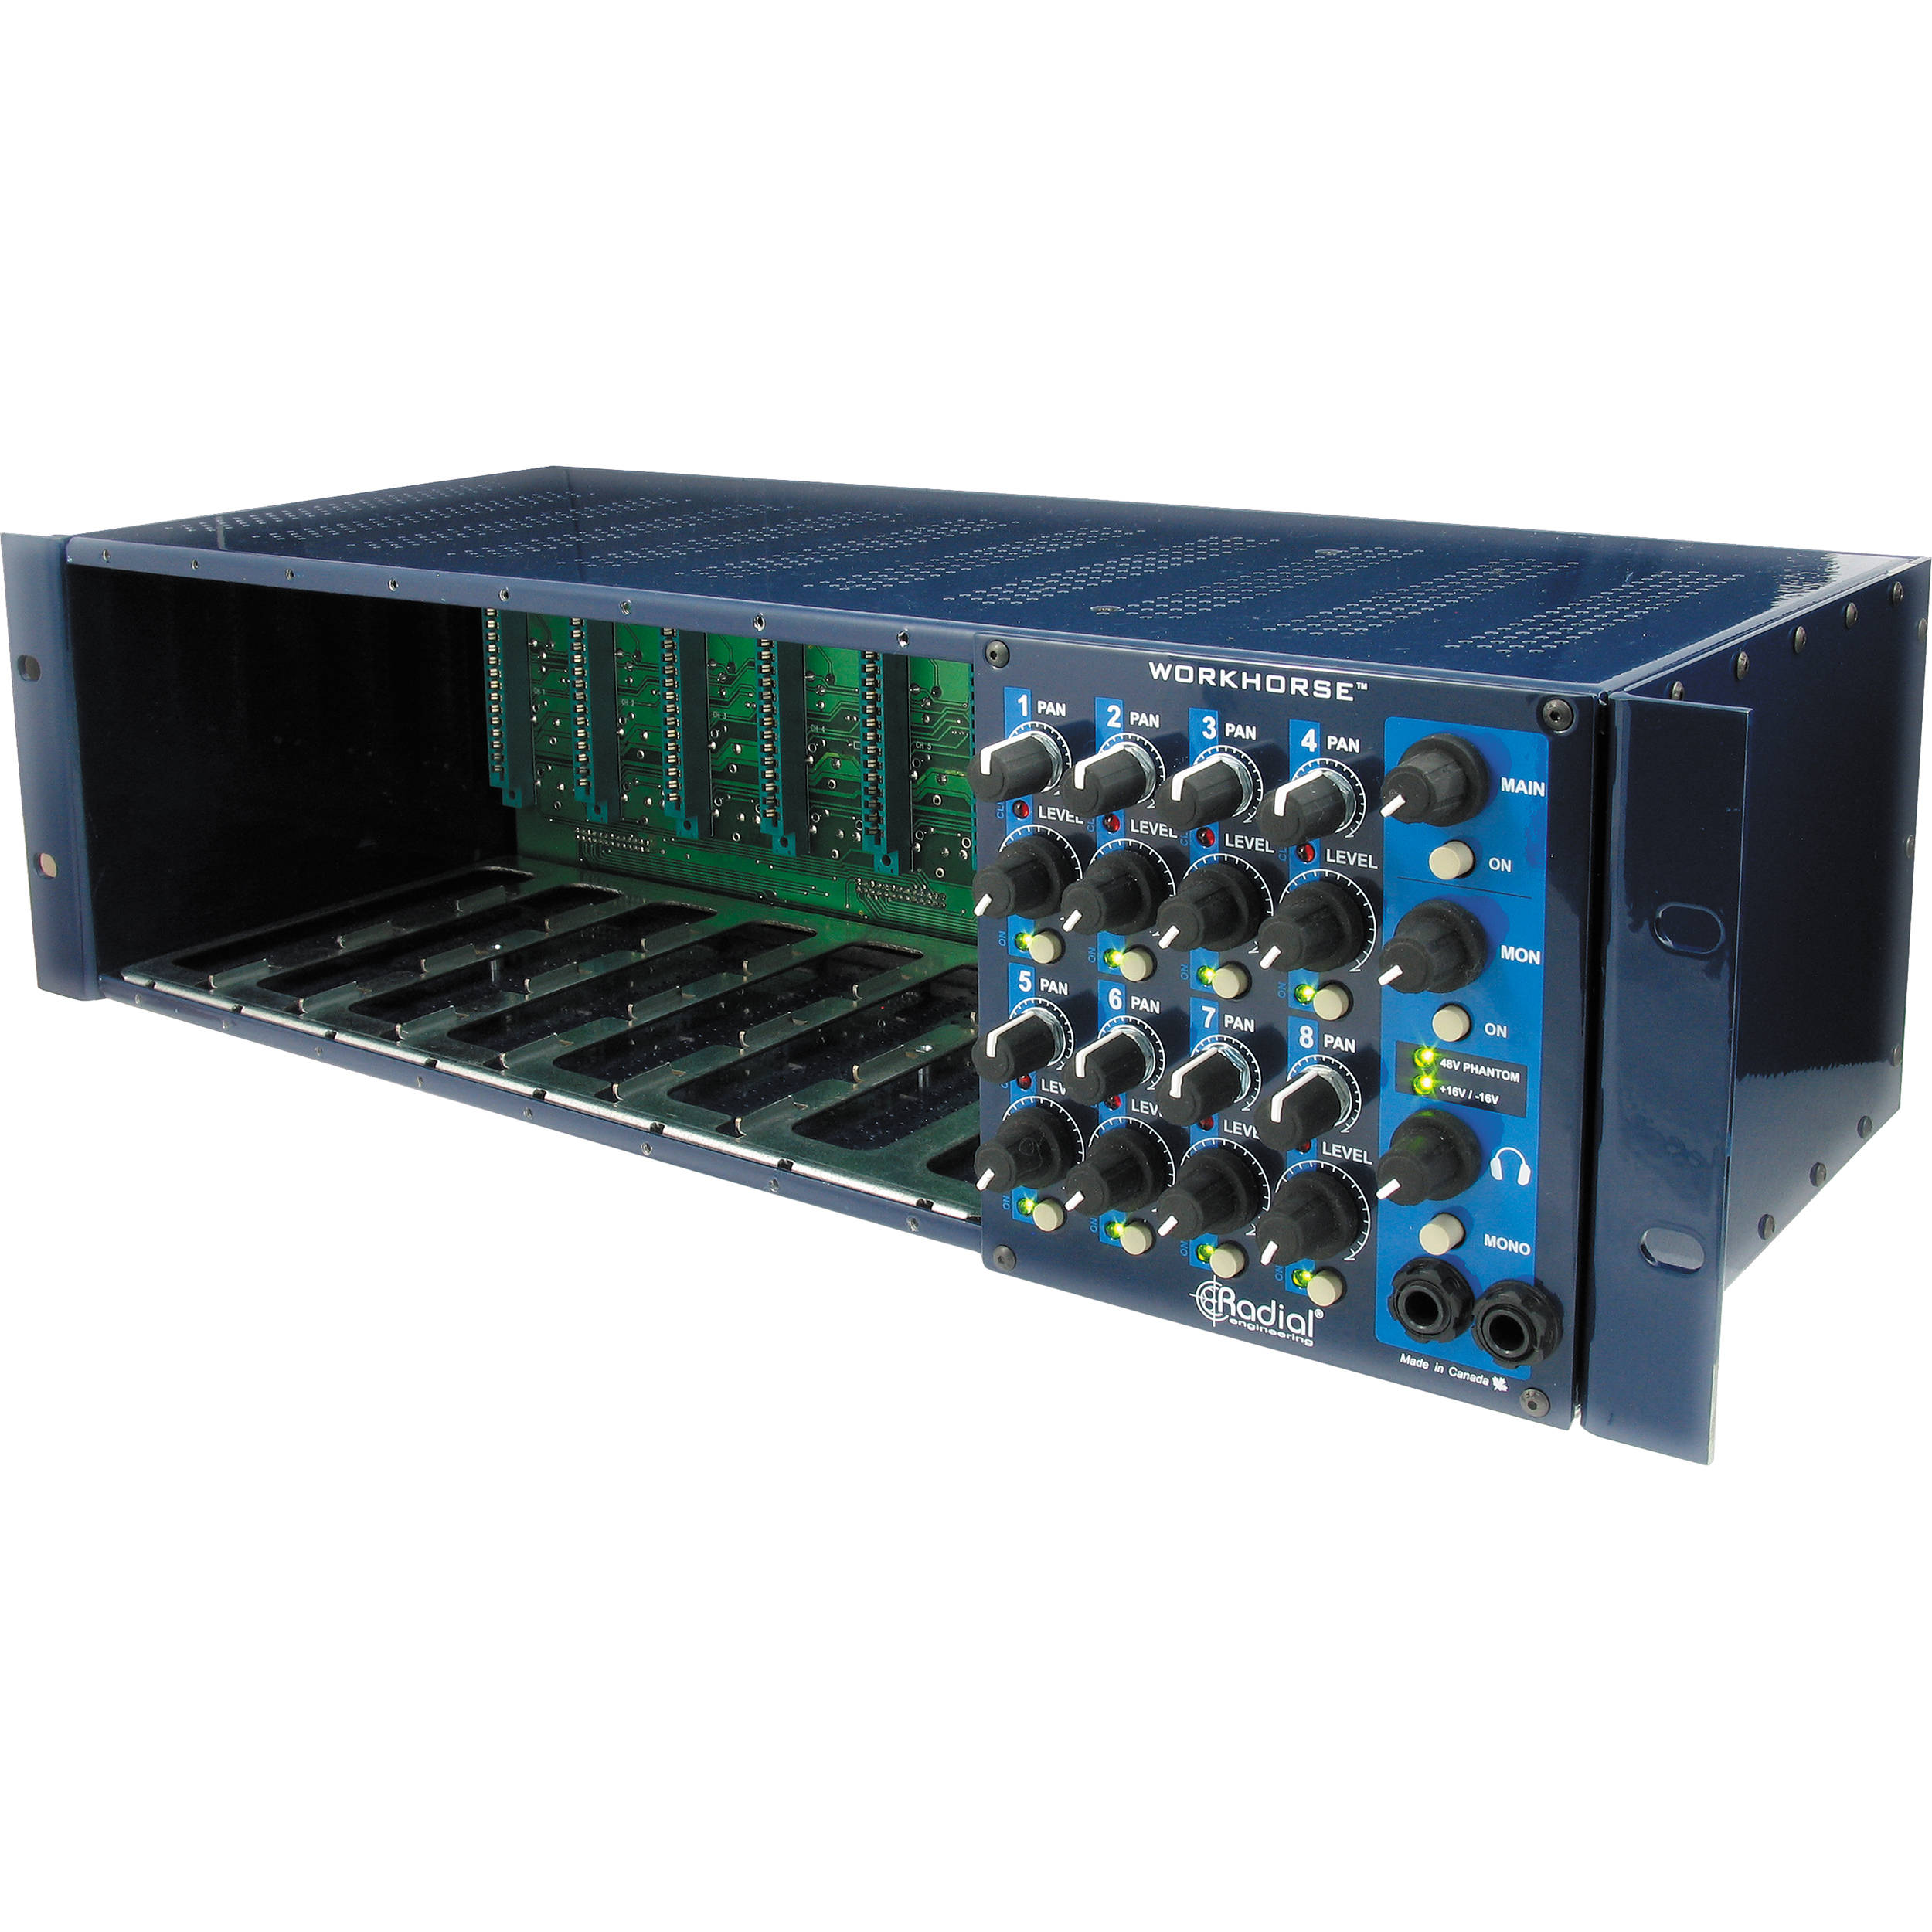 Radial Engineering 500 Series Workhorse 8 Module Rack R700 0100 Circuit Compact Mixer Audio Volume Pan Amplifier With Channel